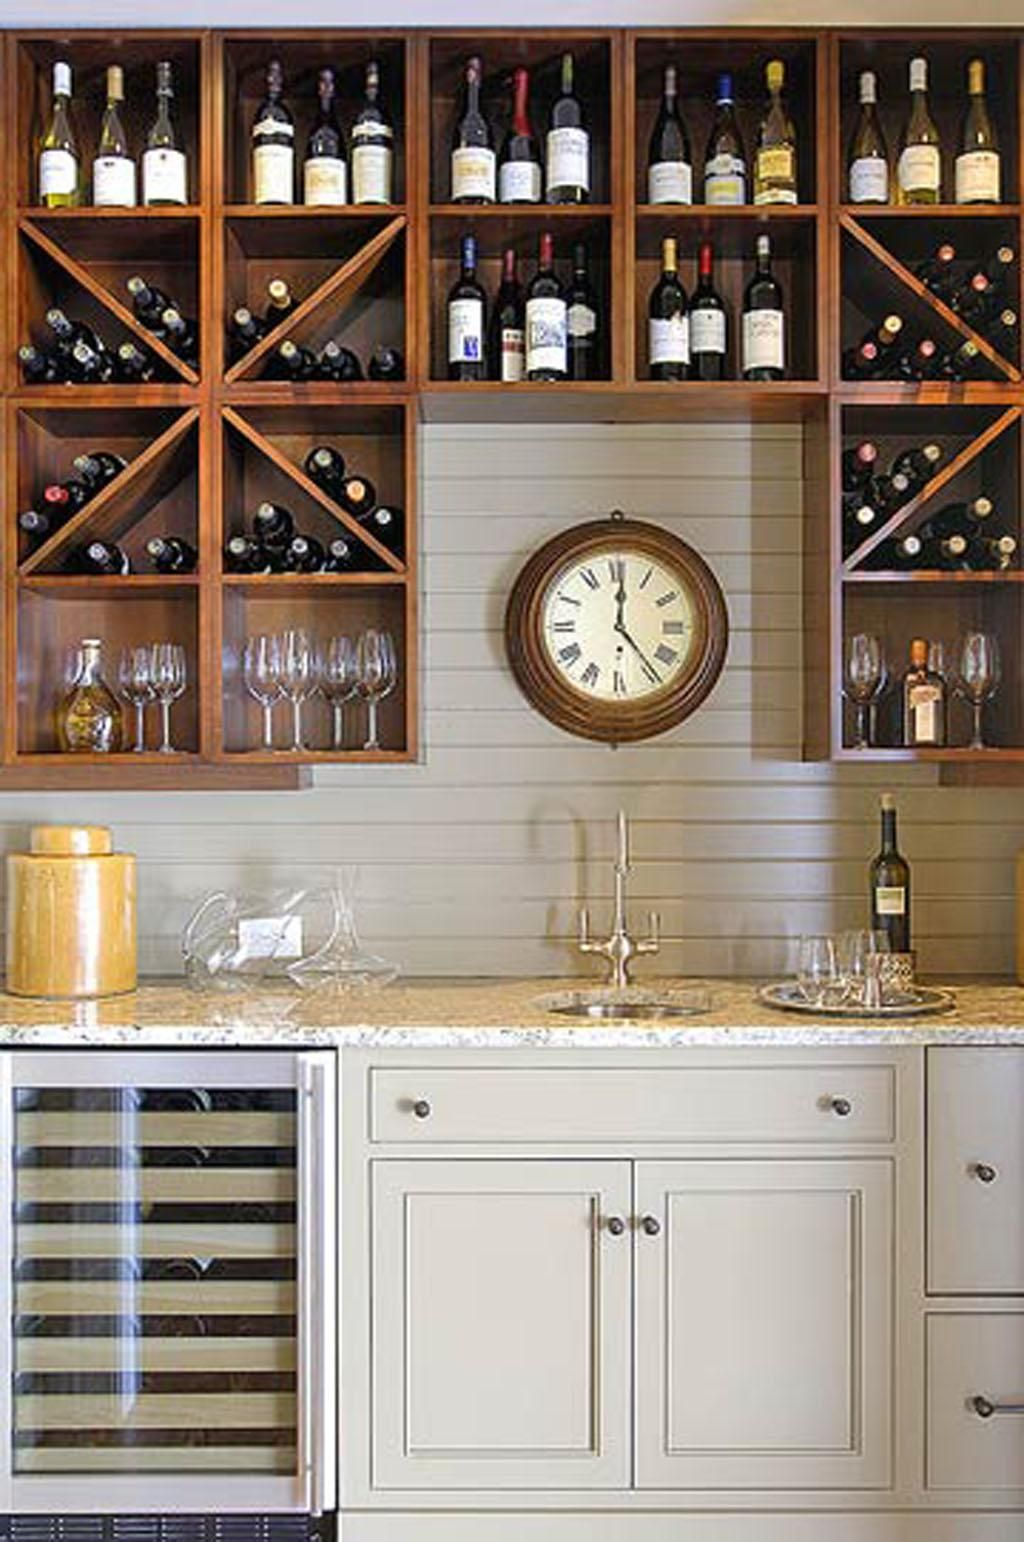 Wine Bar Decorating Ideas Home Wet Bar Wine Storage Wine Bar Wine . & Wine Bar Decorating Ideas Home Wet Bar Wine Storage Wine Bar Wine ...